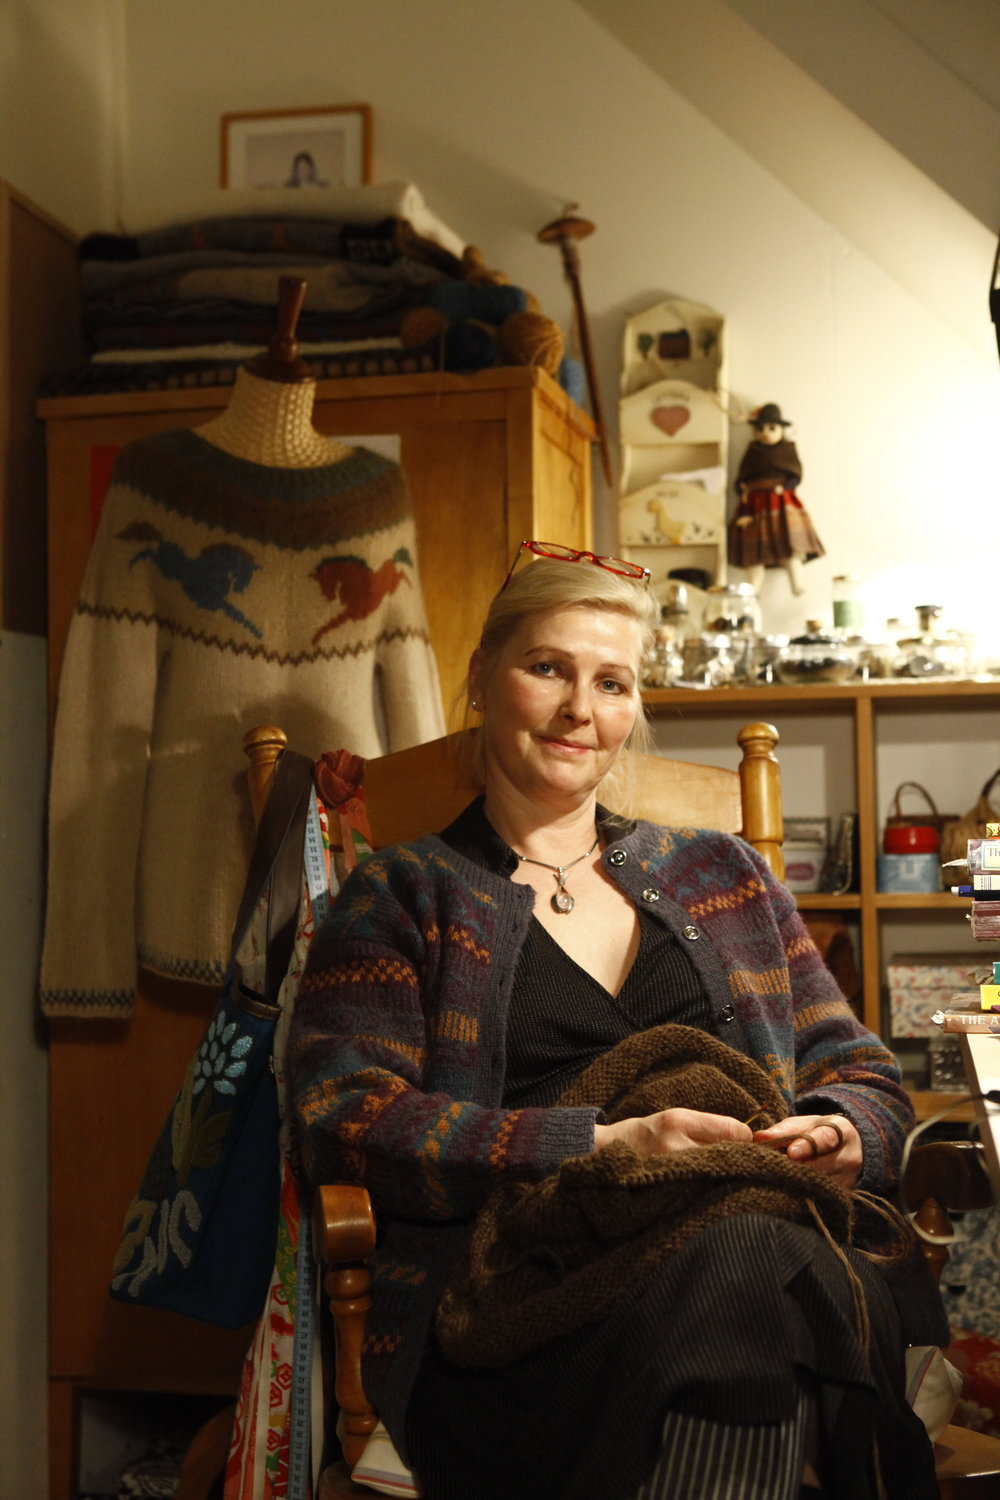 Me in my favourite spot - surrounded by my knitting stuff and sitting by the widow with the knitting needles in my hands - JUST LIKE MY MOTHER....;)